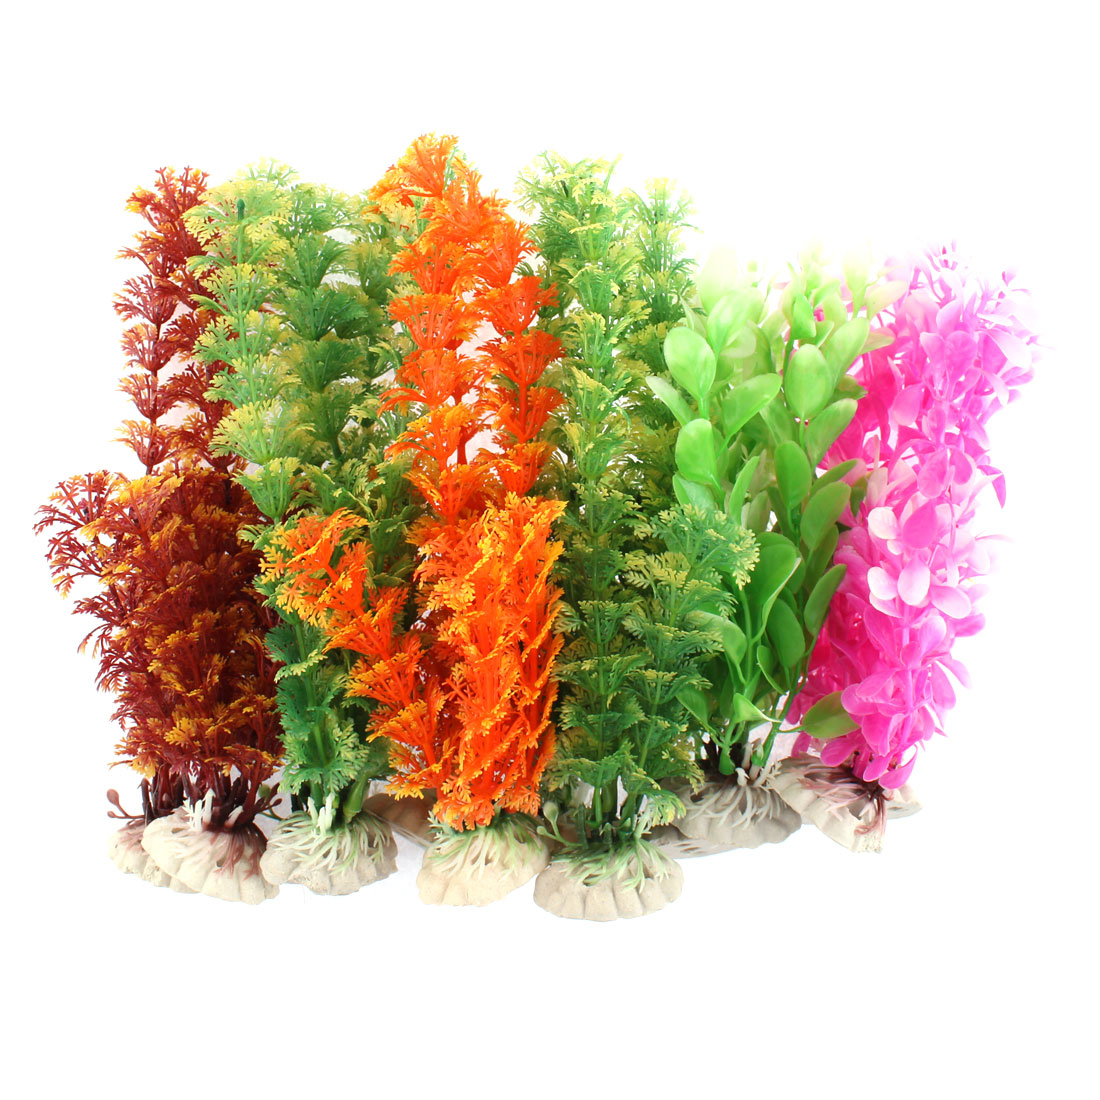 Aquarium Plastic Artificial Aquatic Plant Decor Assorted Colors 12 Pcs Assorted Color